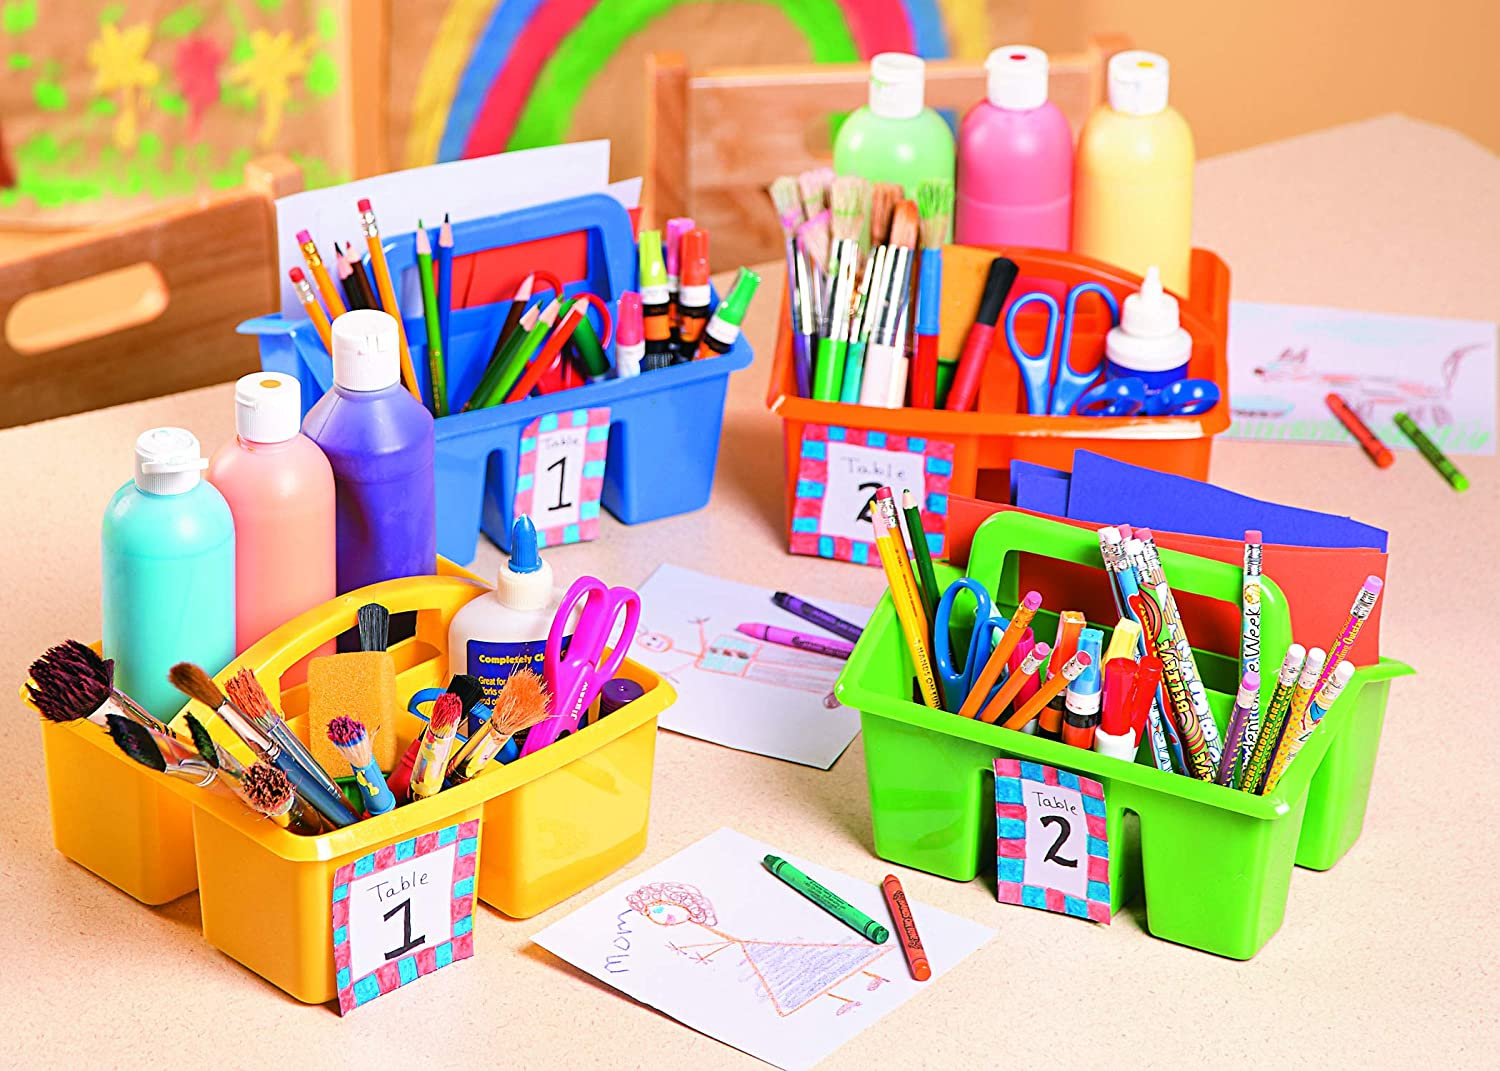 Colored caddies holding school supplies.